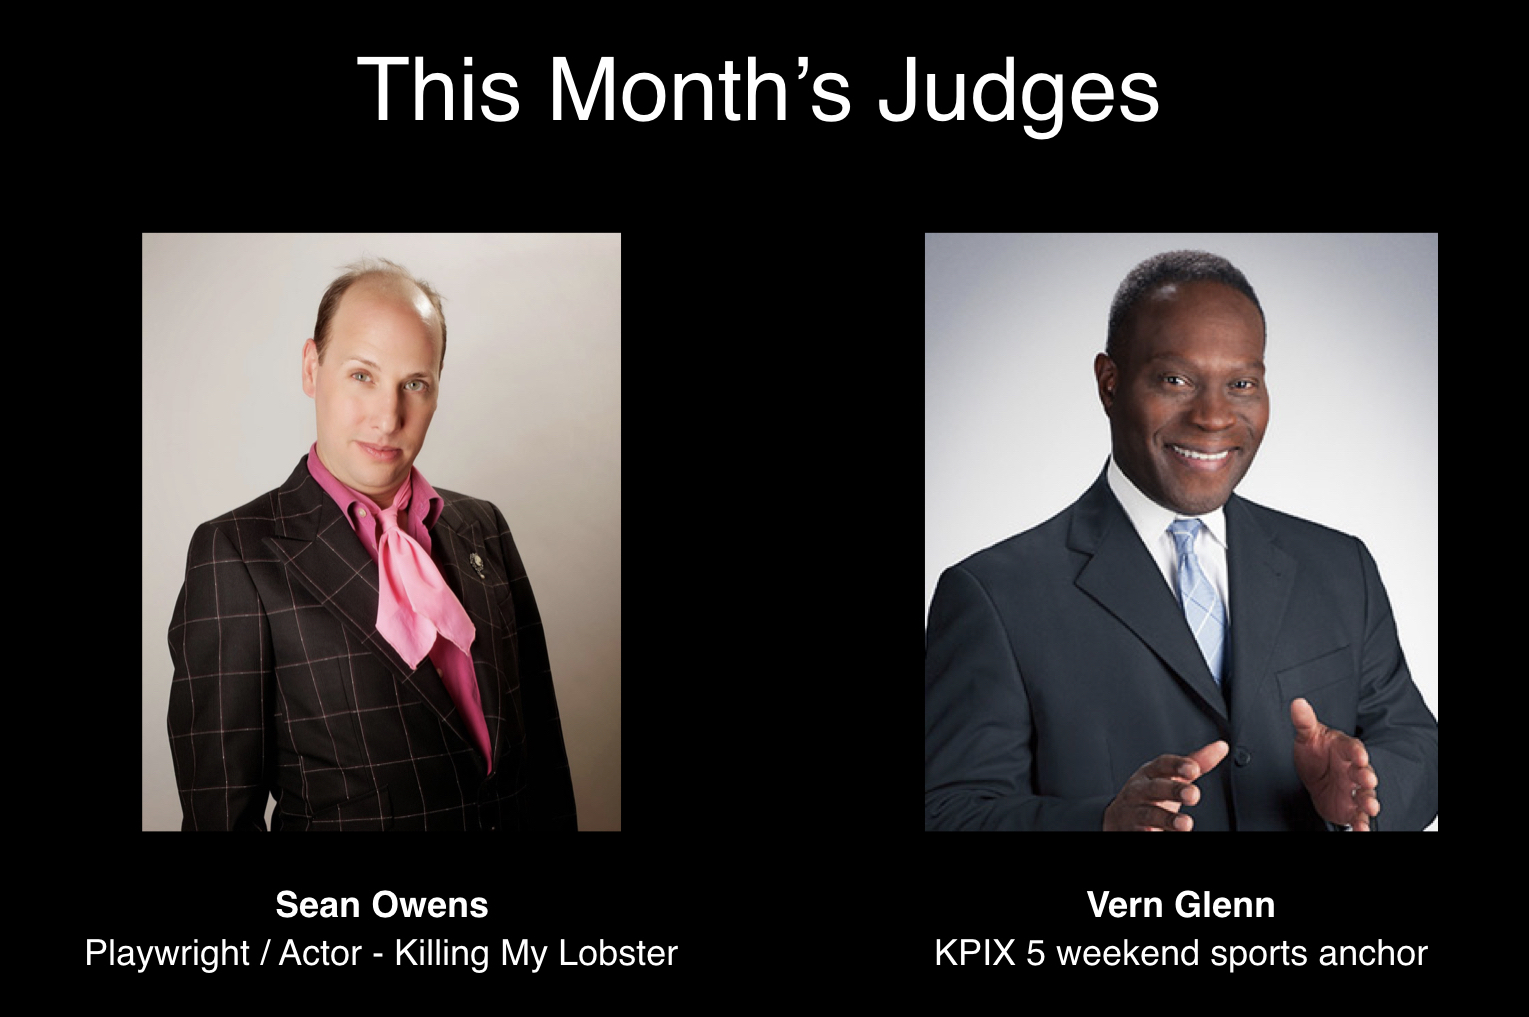 March 2019 Speechless Live Judges: Sean Owens and Vern Glenn